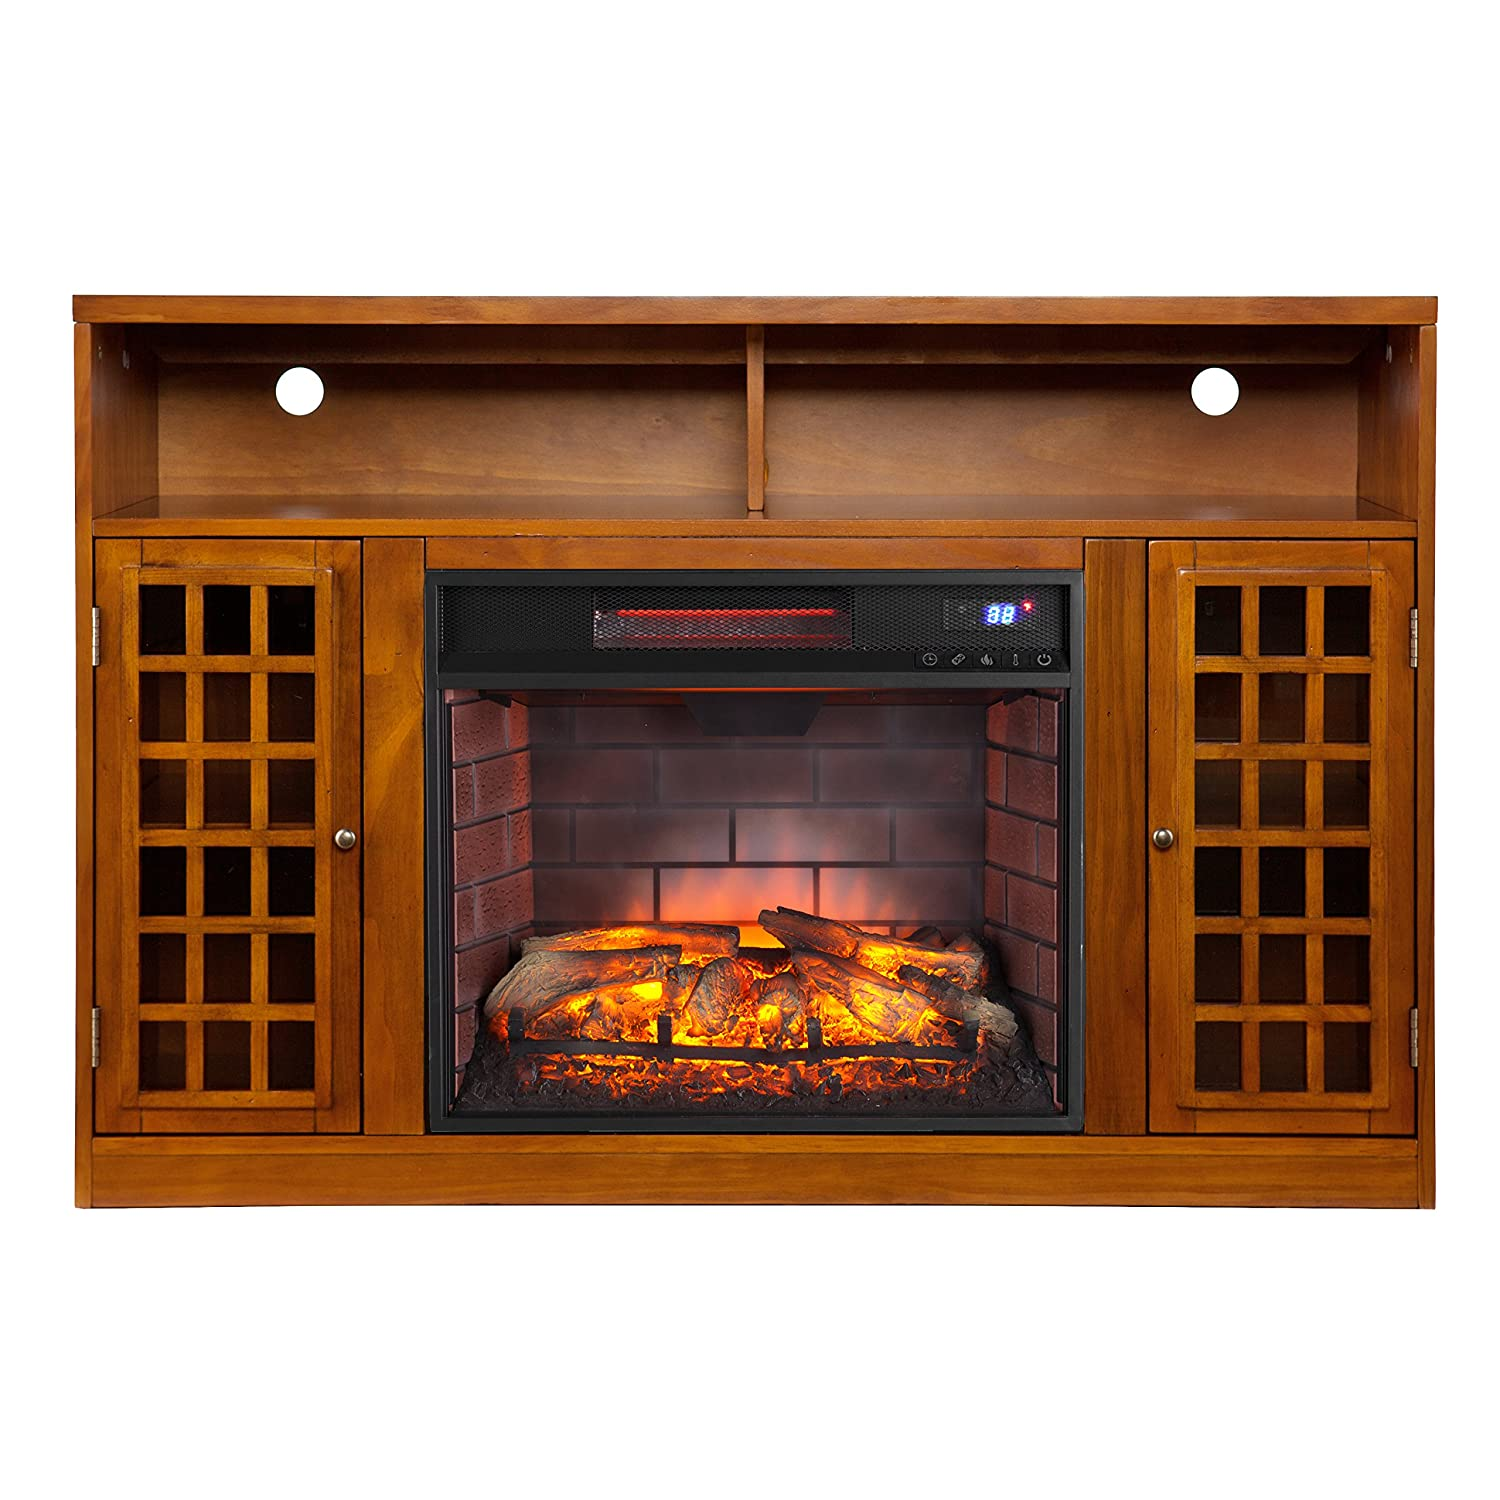 Southern Enterprises Narita Media Infrared Electric Fireplace, Glazed Pine Finish